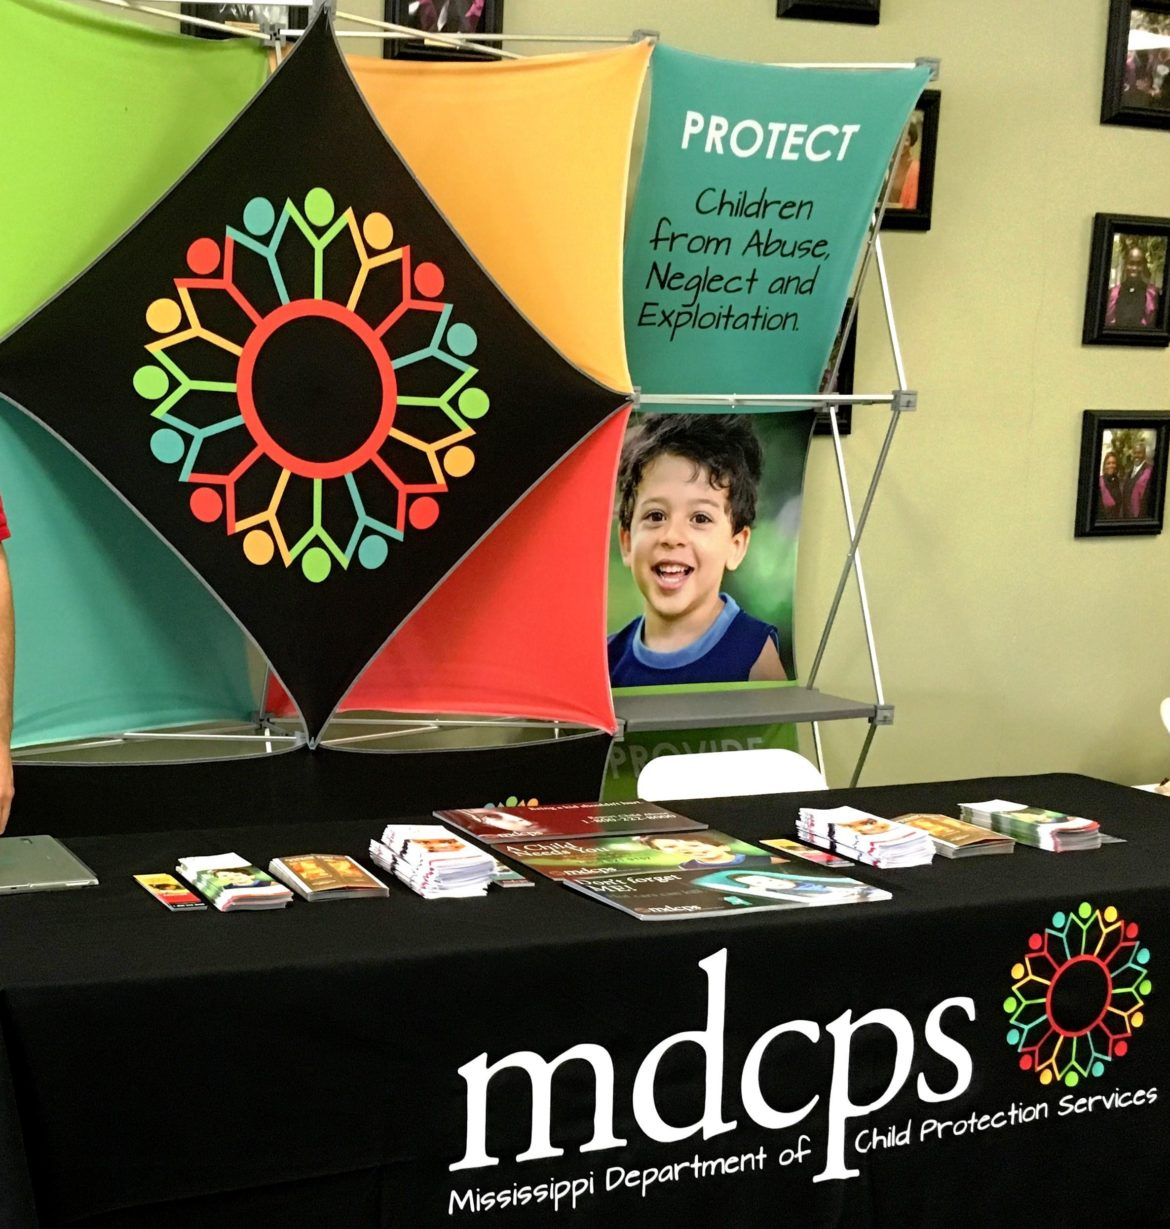 Child Protection Services failed to meet settlement requirements in